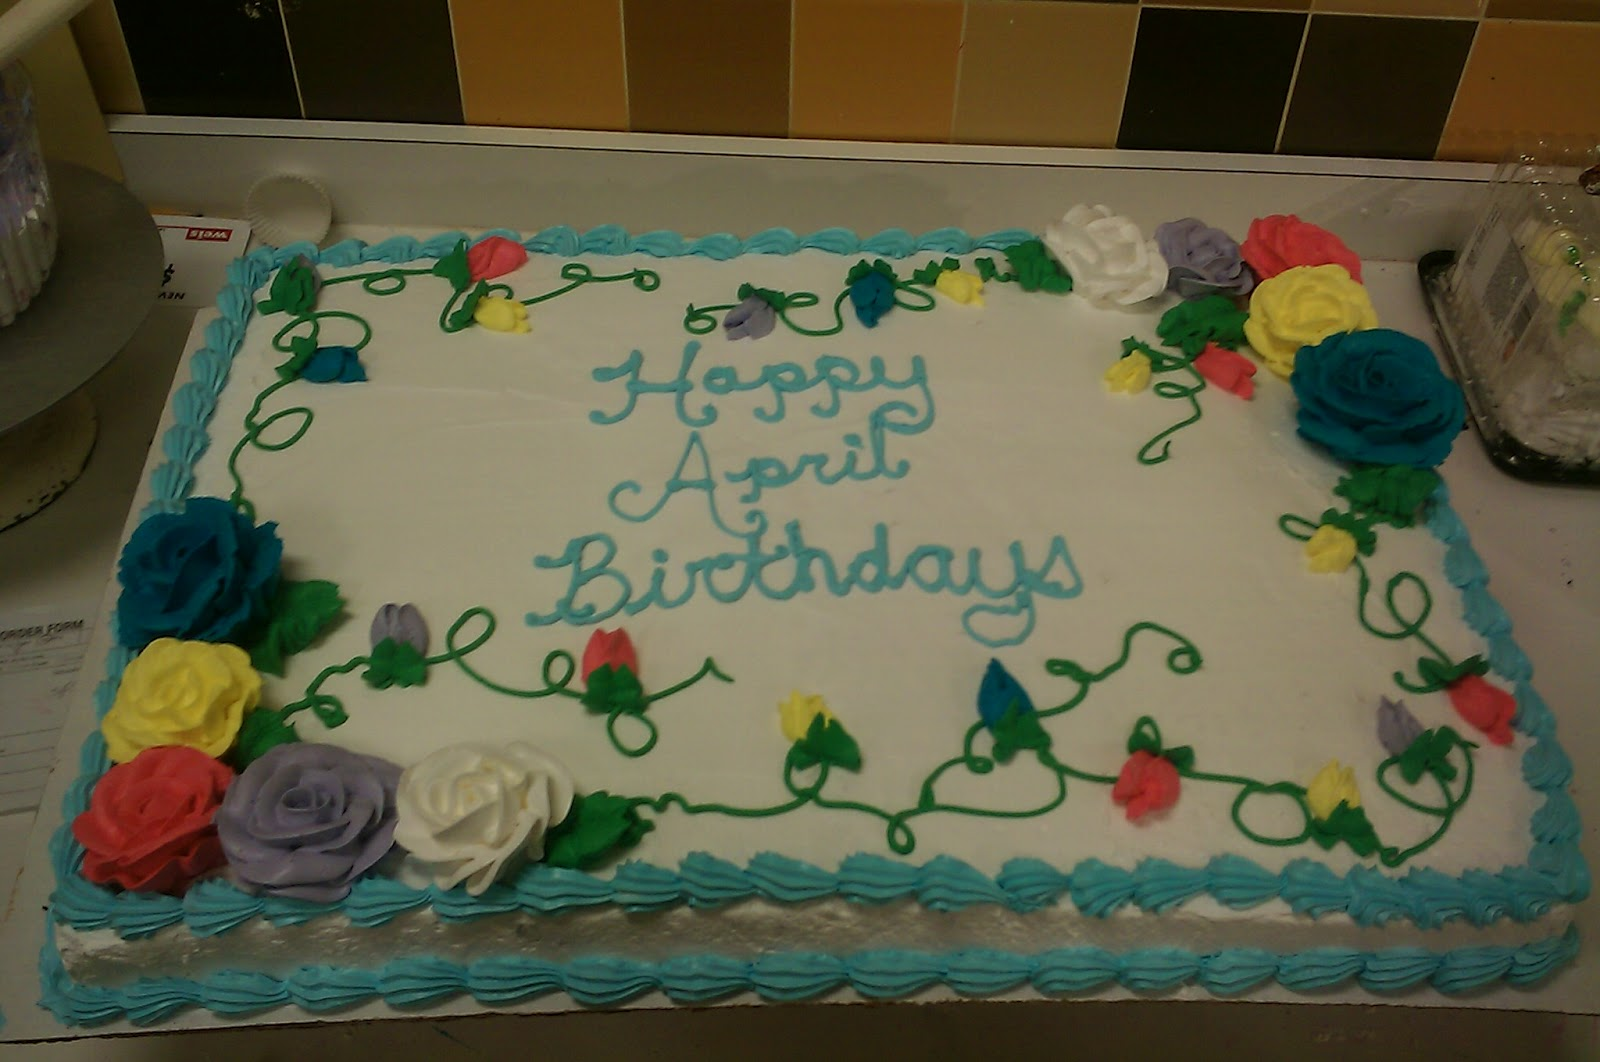 Iced Queen Cakery Group Birthday Cake